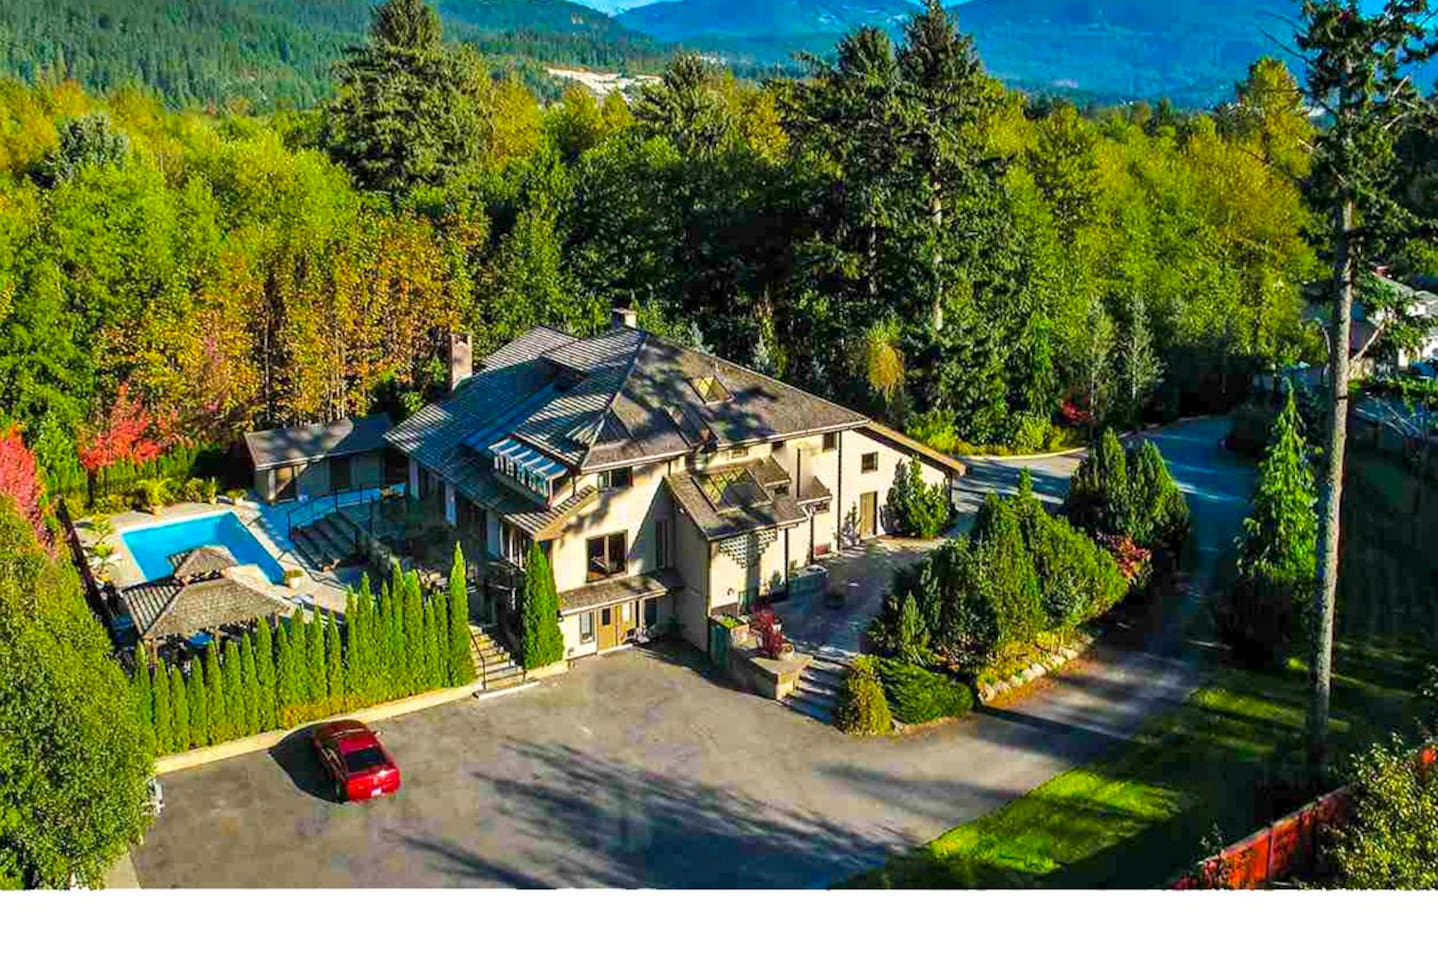 The big house you will stay in Squamish 您即将入住的海天别墅